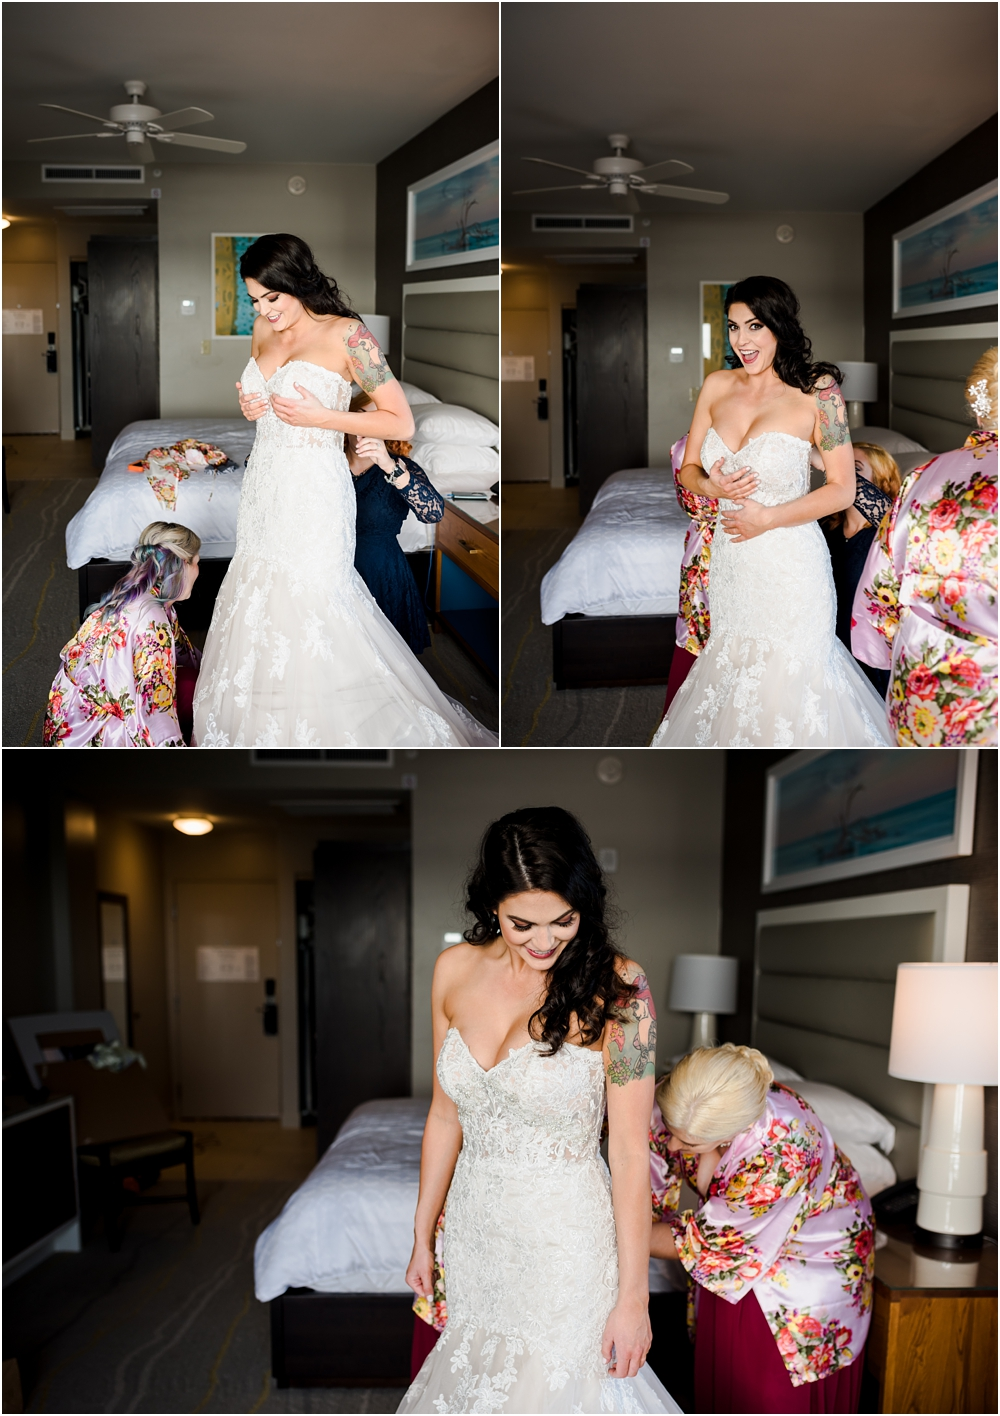 imhof-sheraton-panama-city-beach-florida-wedding-photographer-kiersten-grant-45.jpg